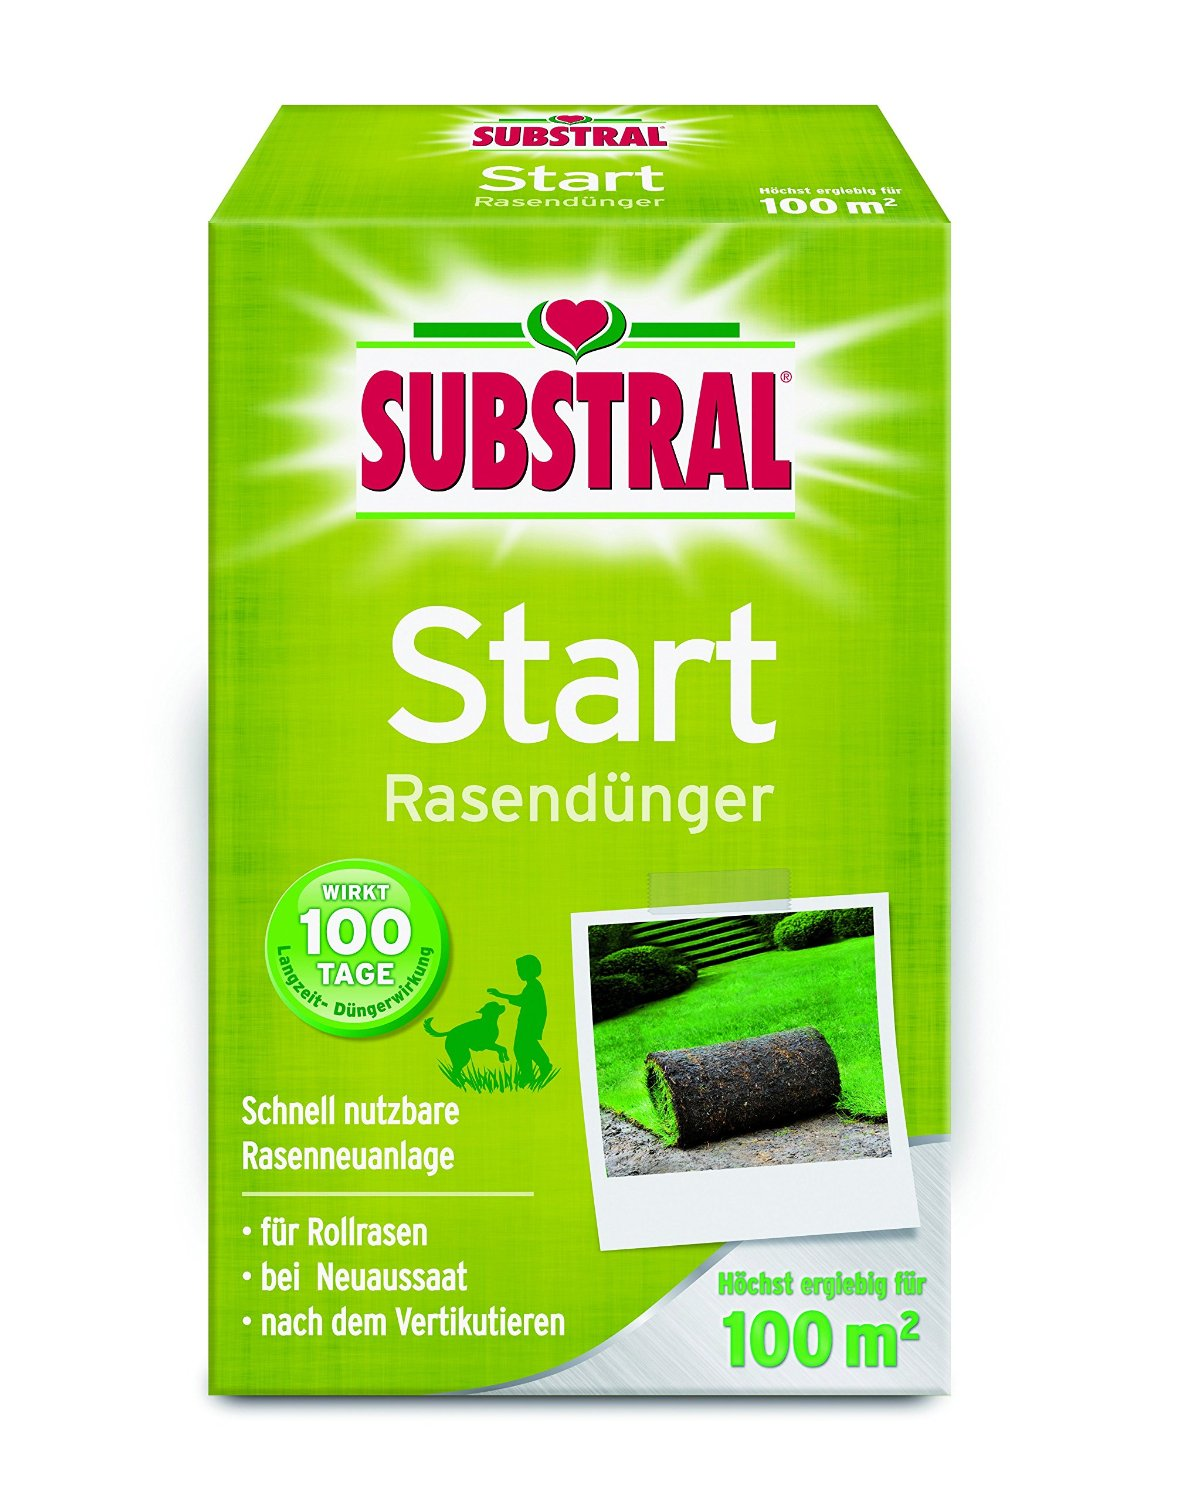 Substral-Start-Rasenduenger Test